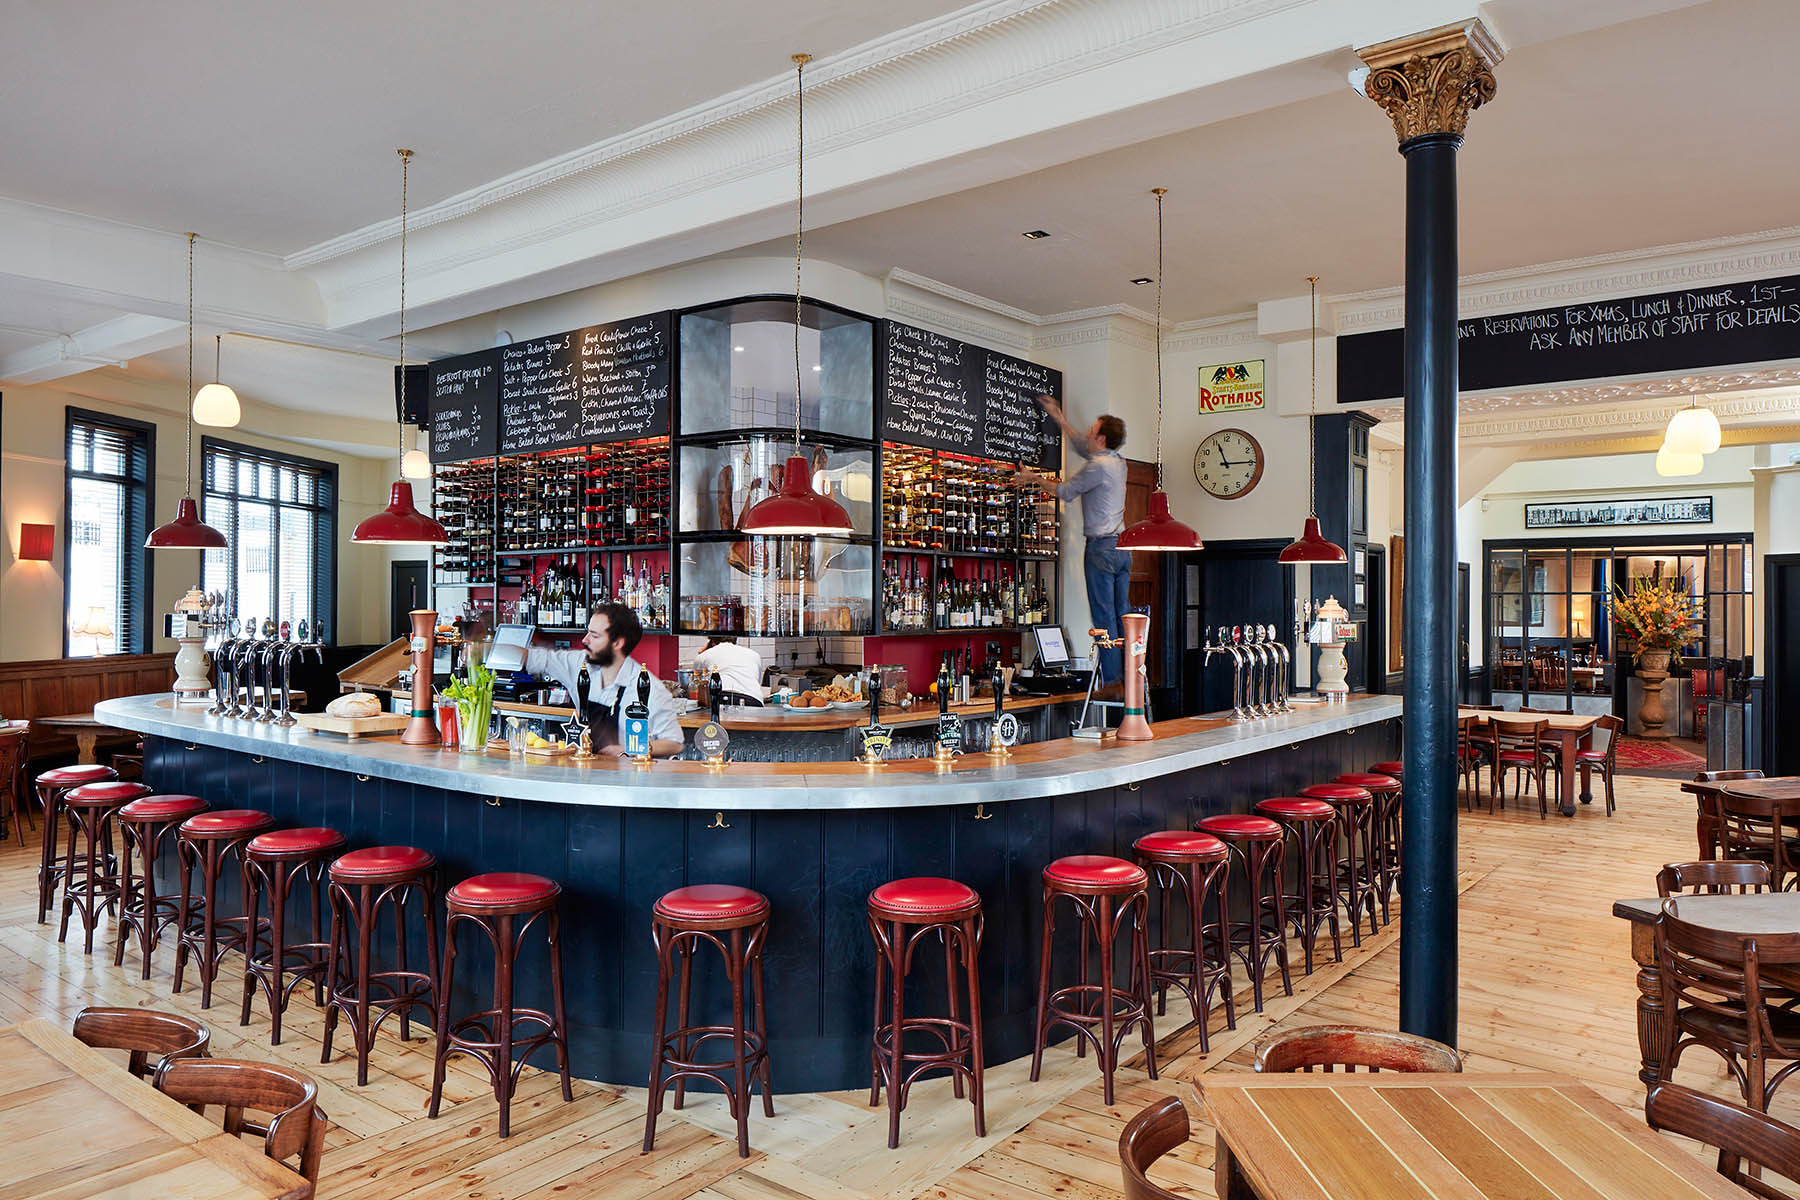 Sympathetic reworking of traditional London pub into brasserie style bar / restaurant maintaining original features. Client: St John's Tavern